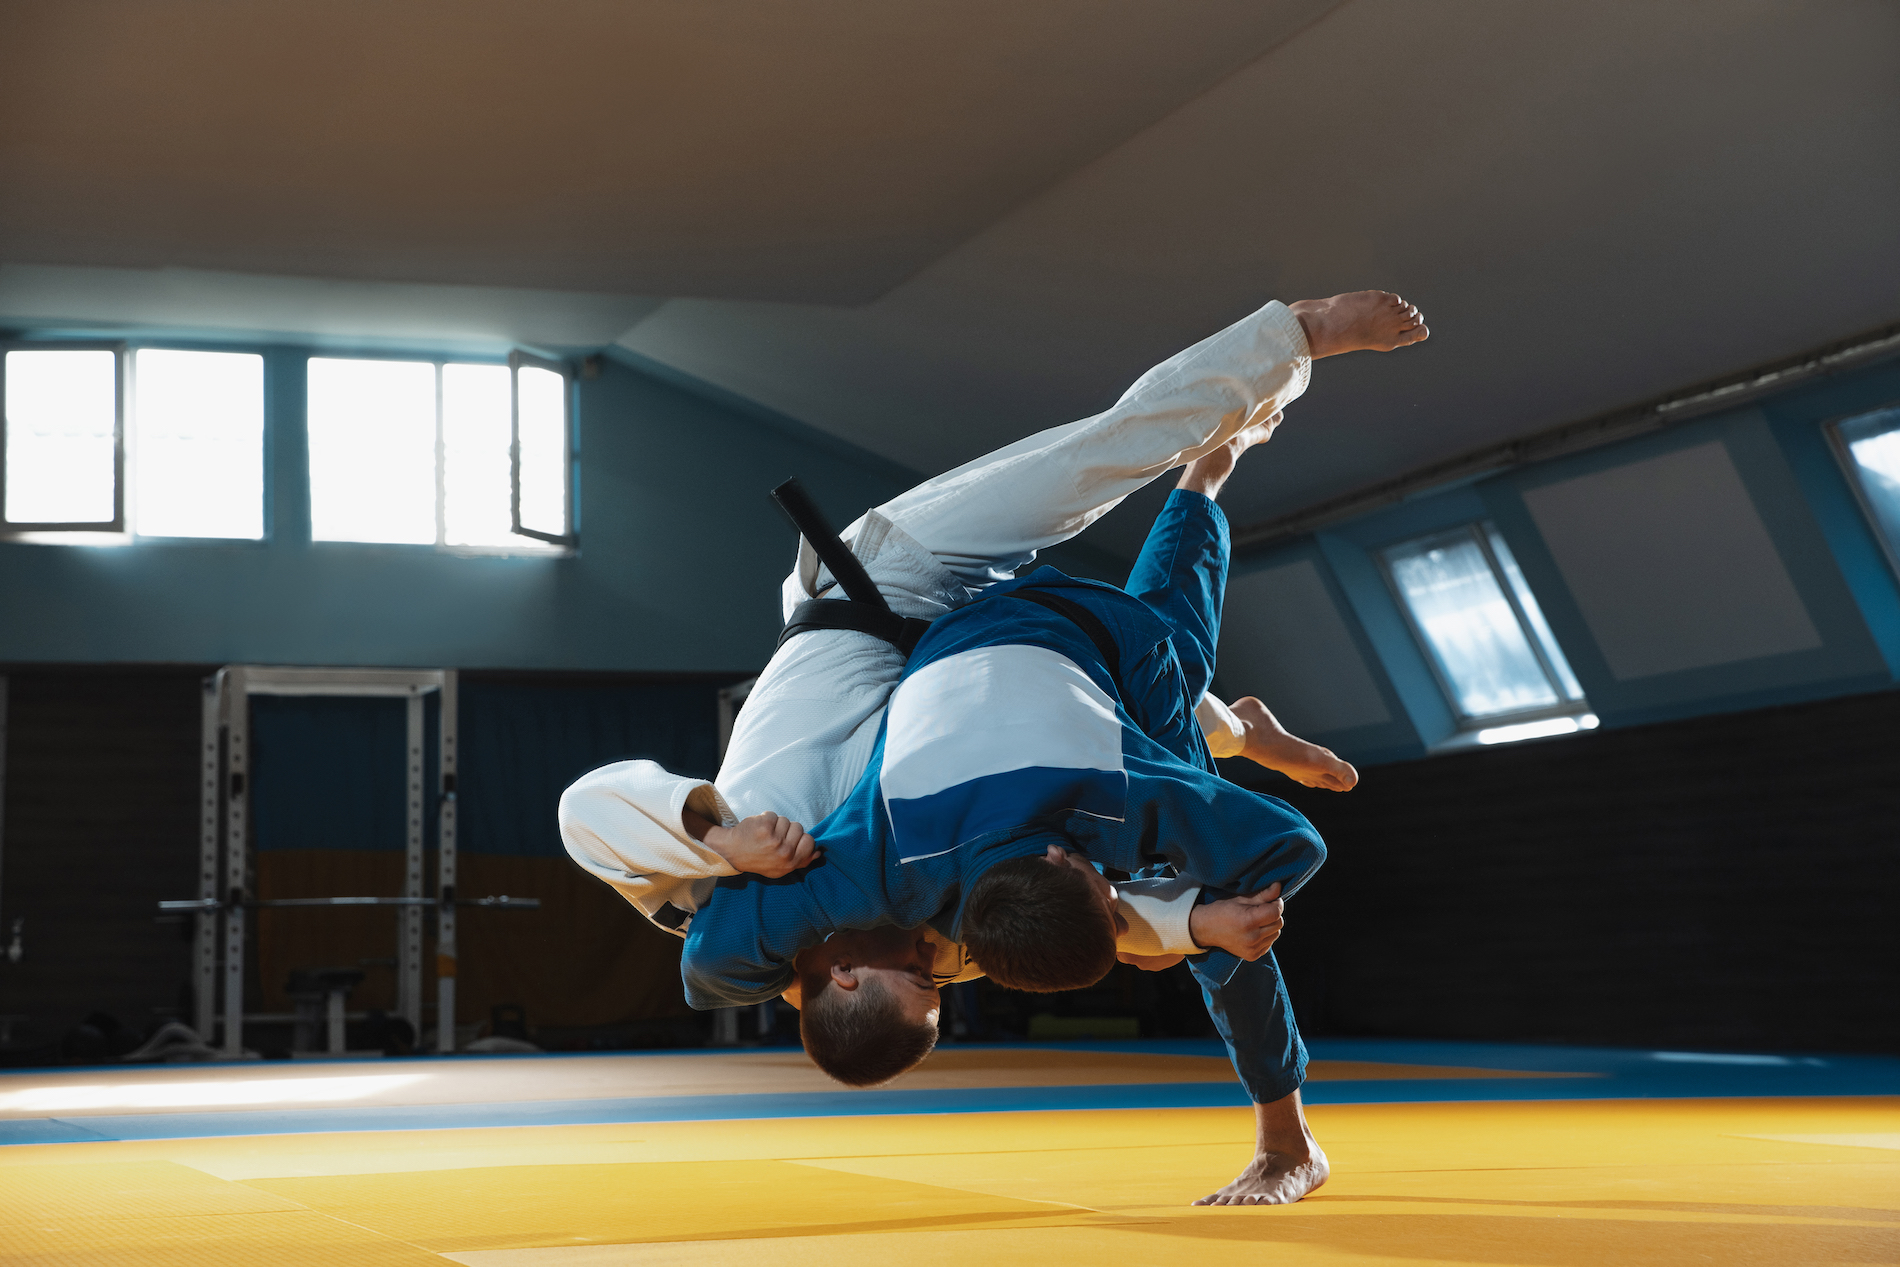 World Judo Championships 2021 to see participation from UAE